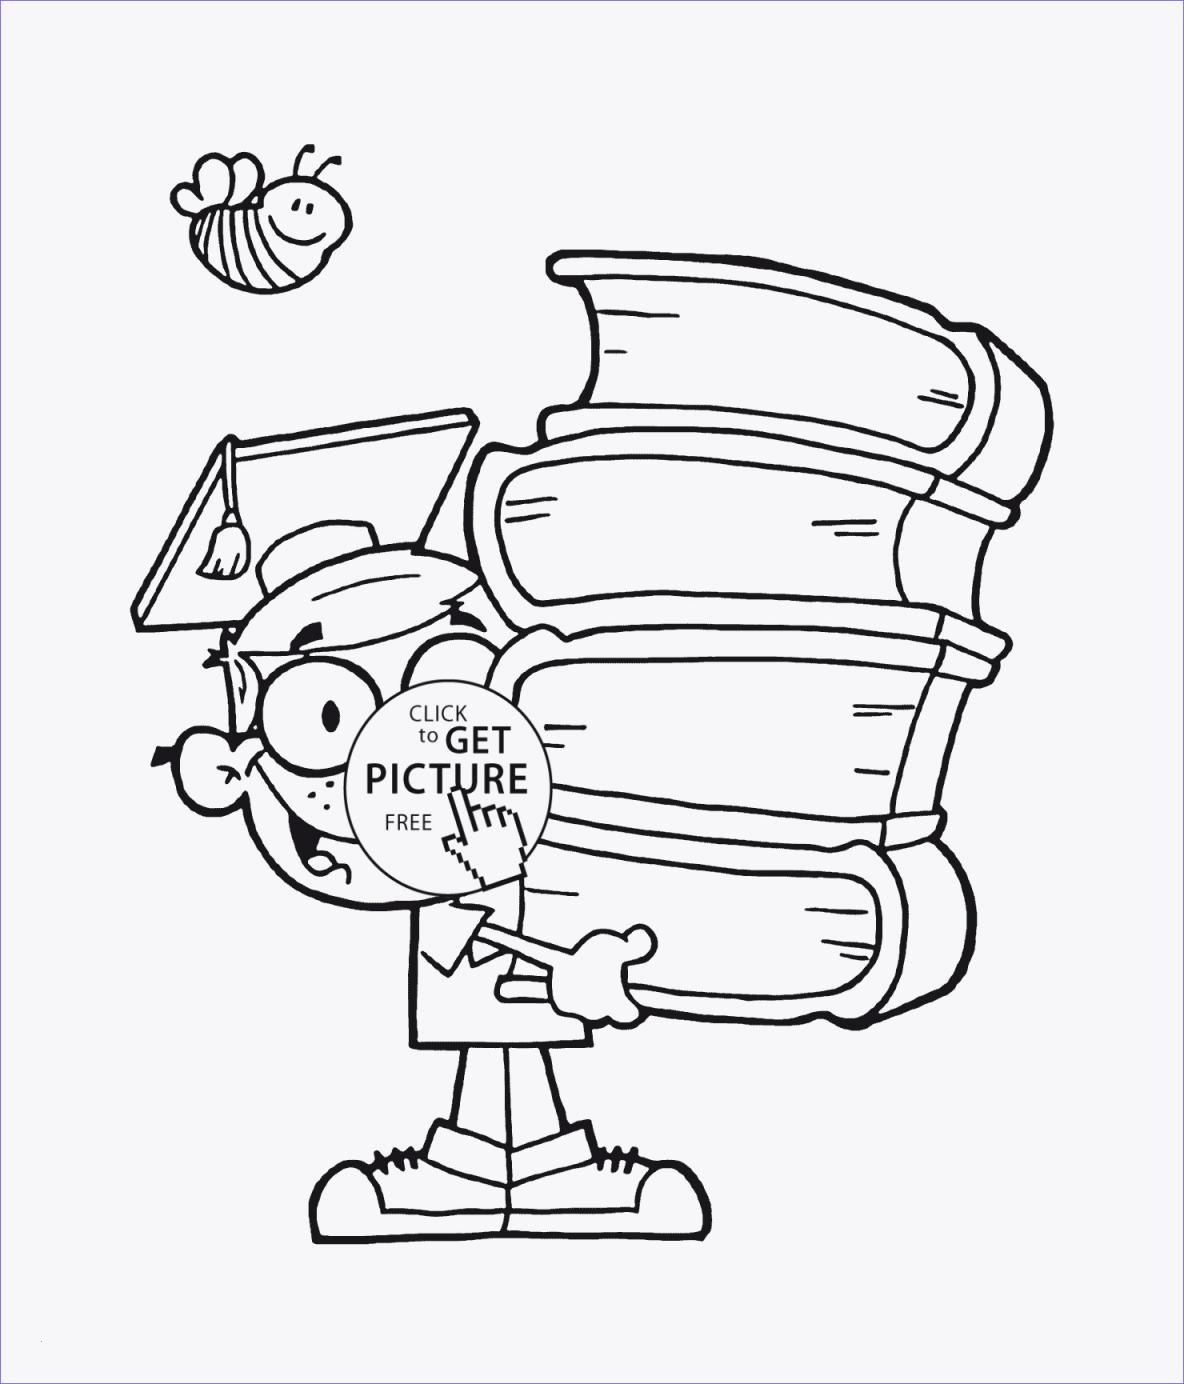 23 augmented reality coloring pages download - coloring sheets